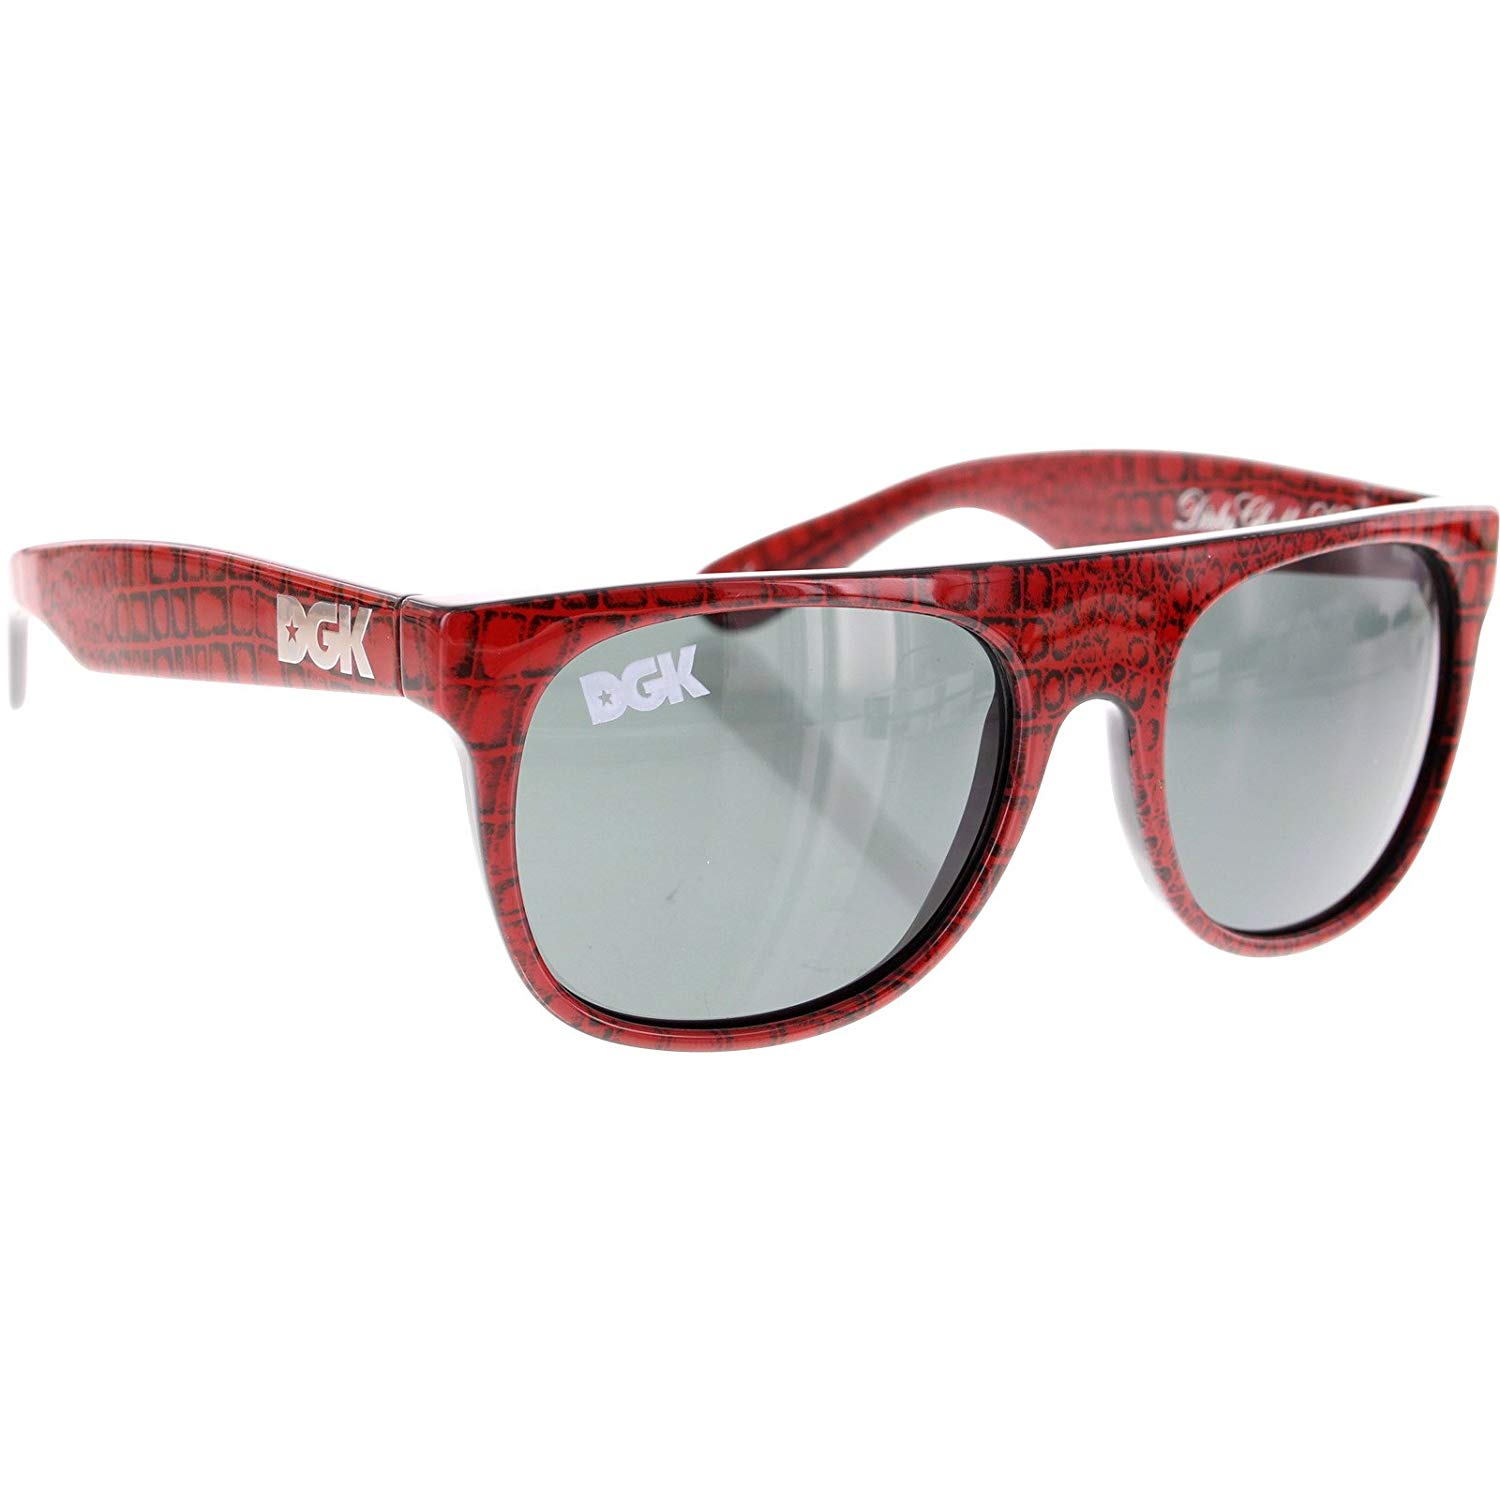 fa46cb8e025 Get Quotations · DGK Skateboards Paya Shades Red Sunglasses